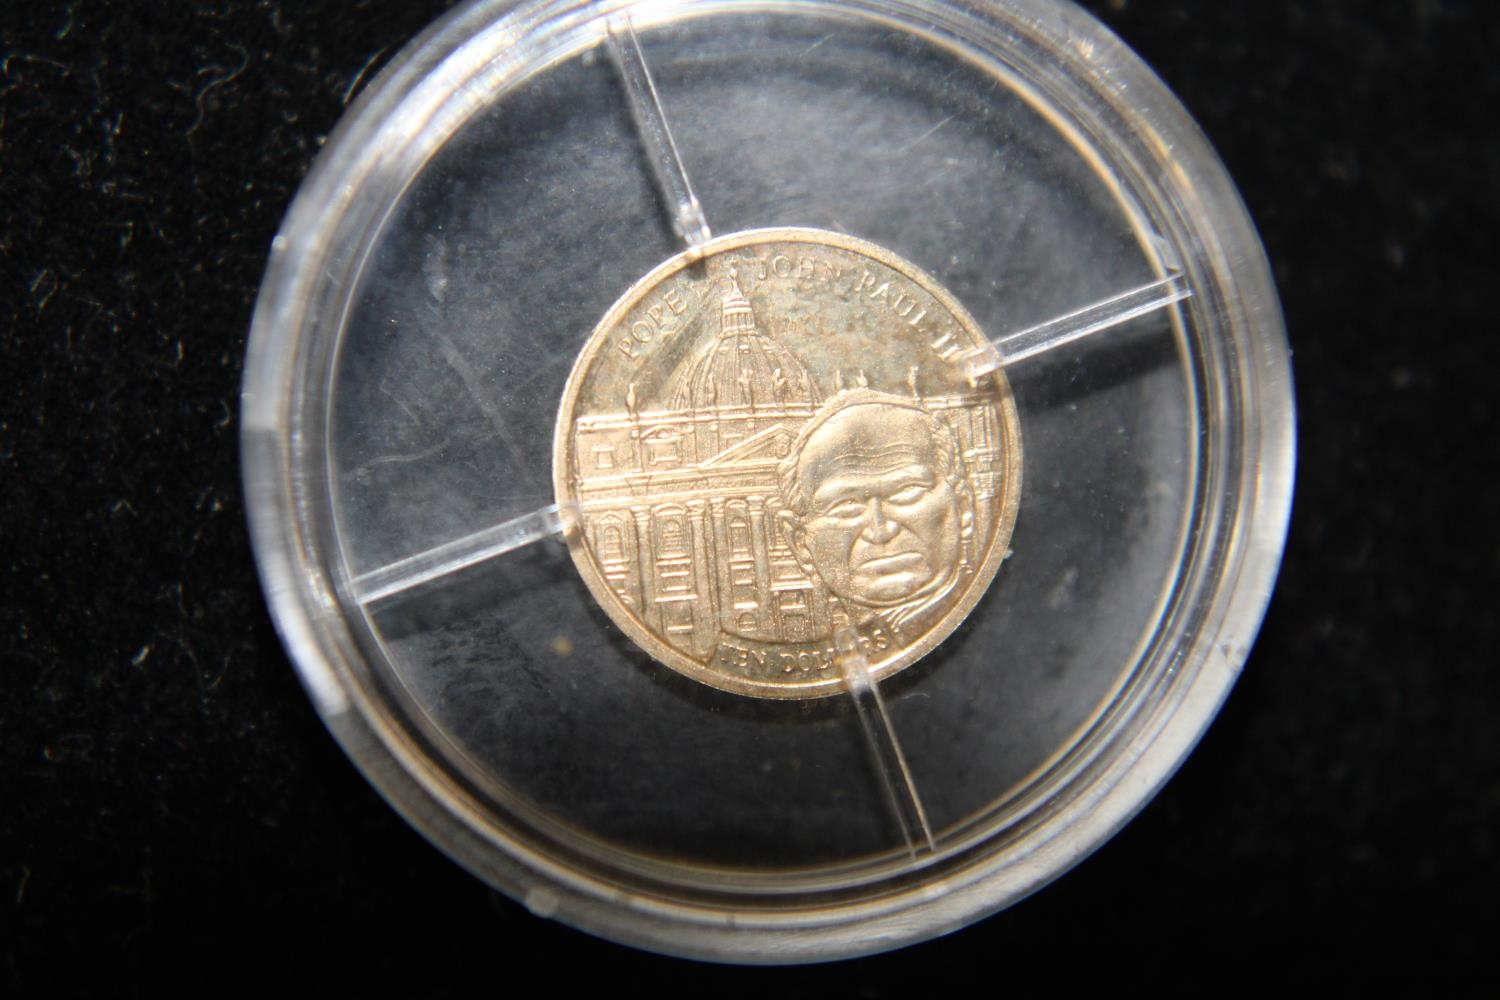 A 24ct gold 2003 Liberia 10 dollar proof coin 0.5 grams